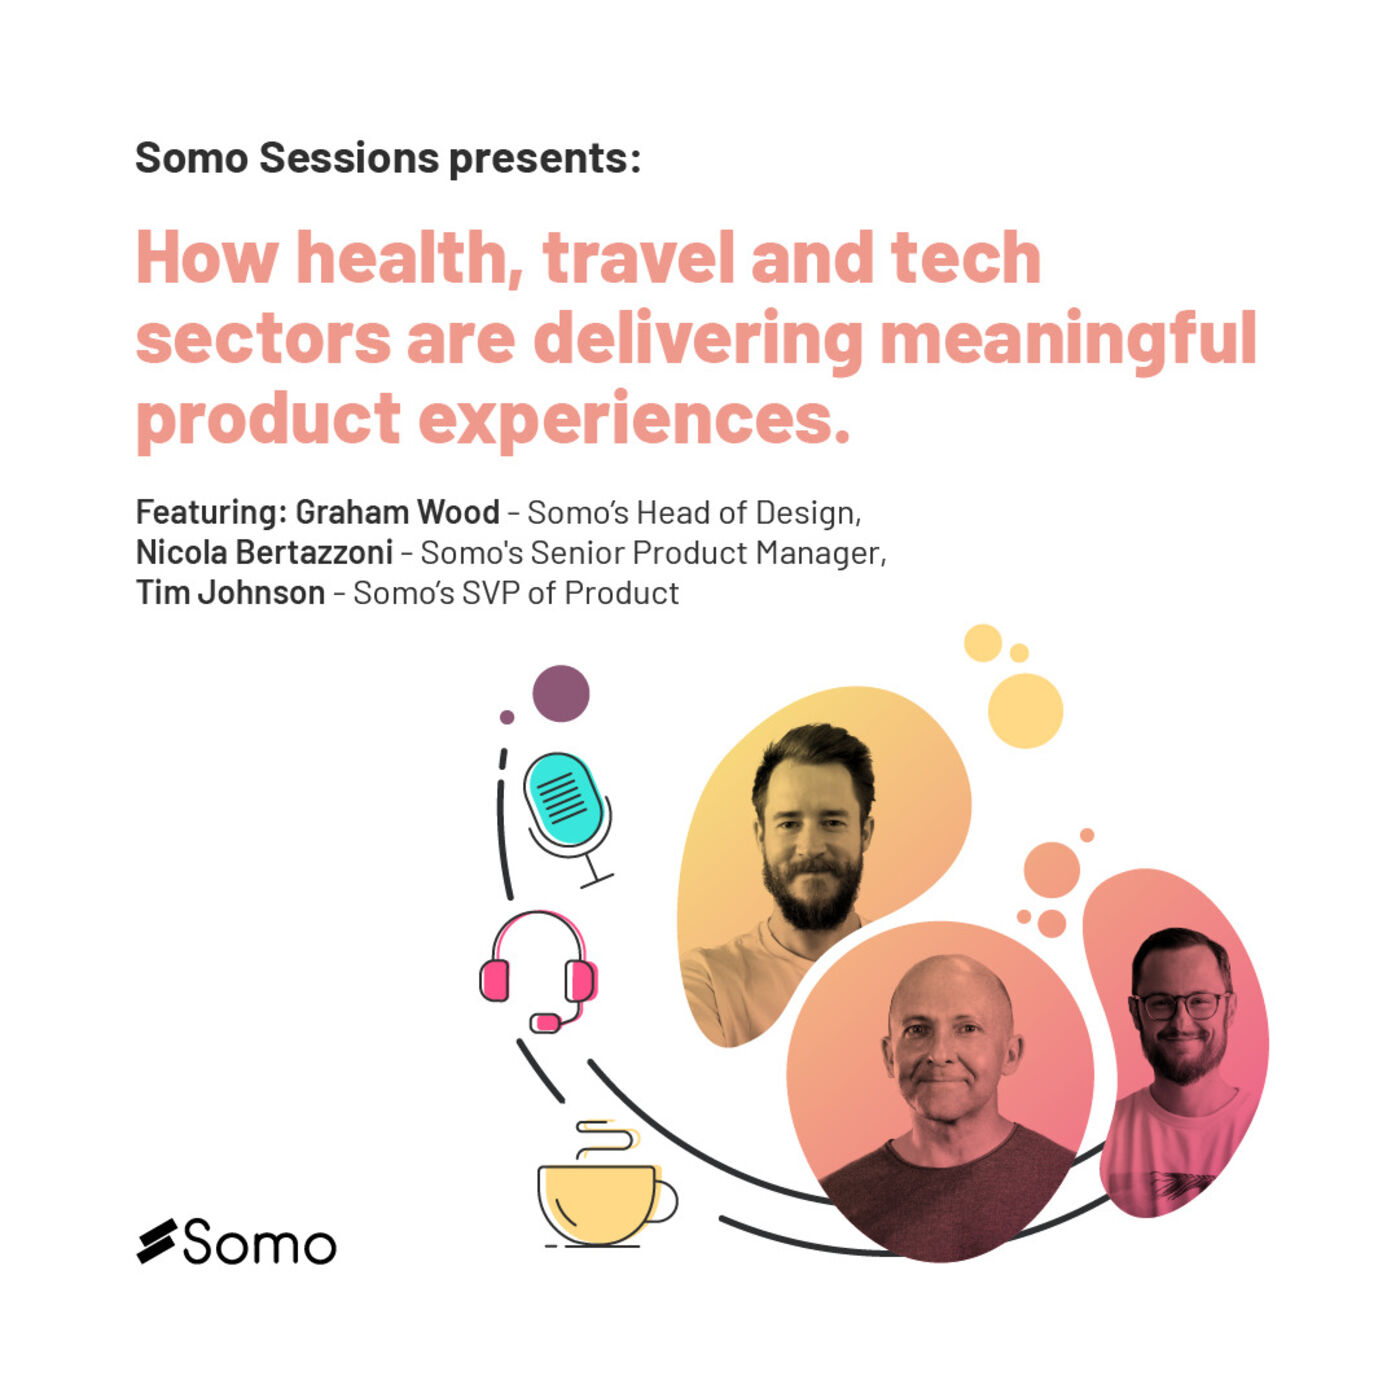 4. How health, travel and tech sectors are delivering meaningful product experiences